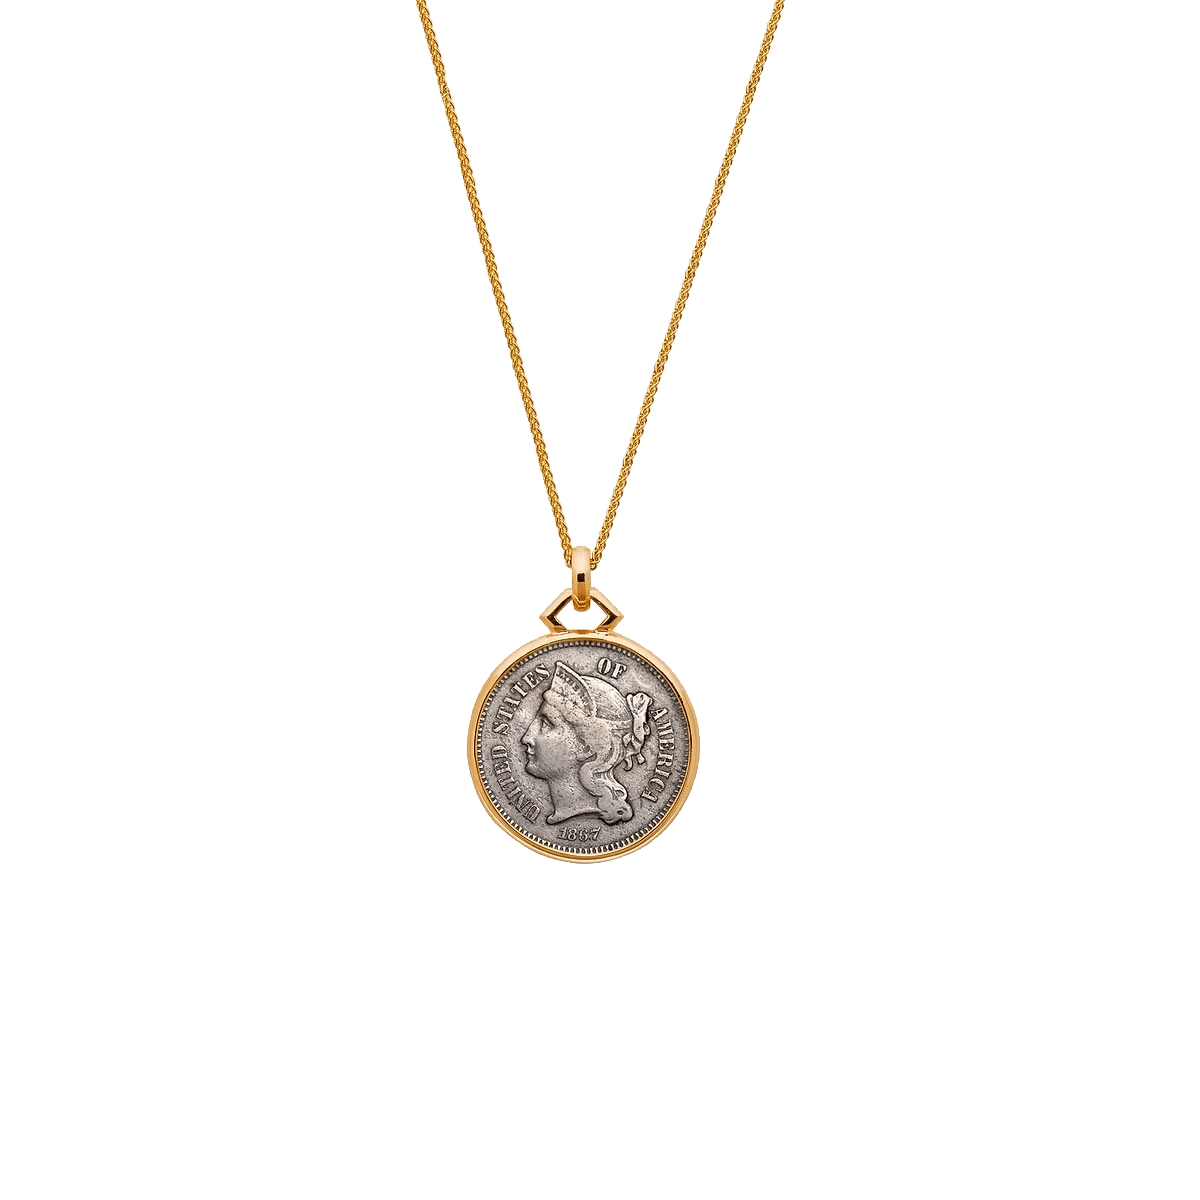 1867 3 Cent Nickel Pendant